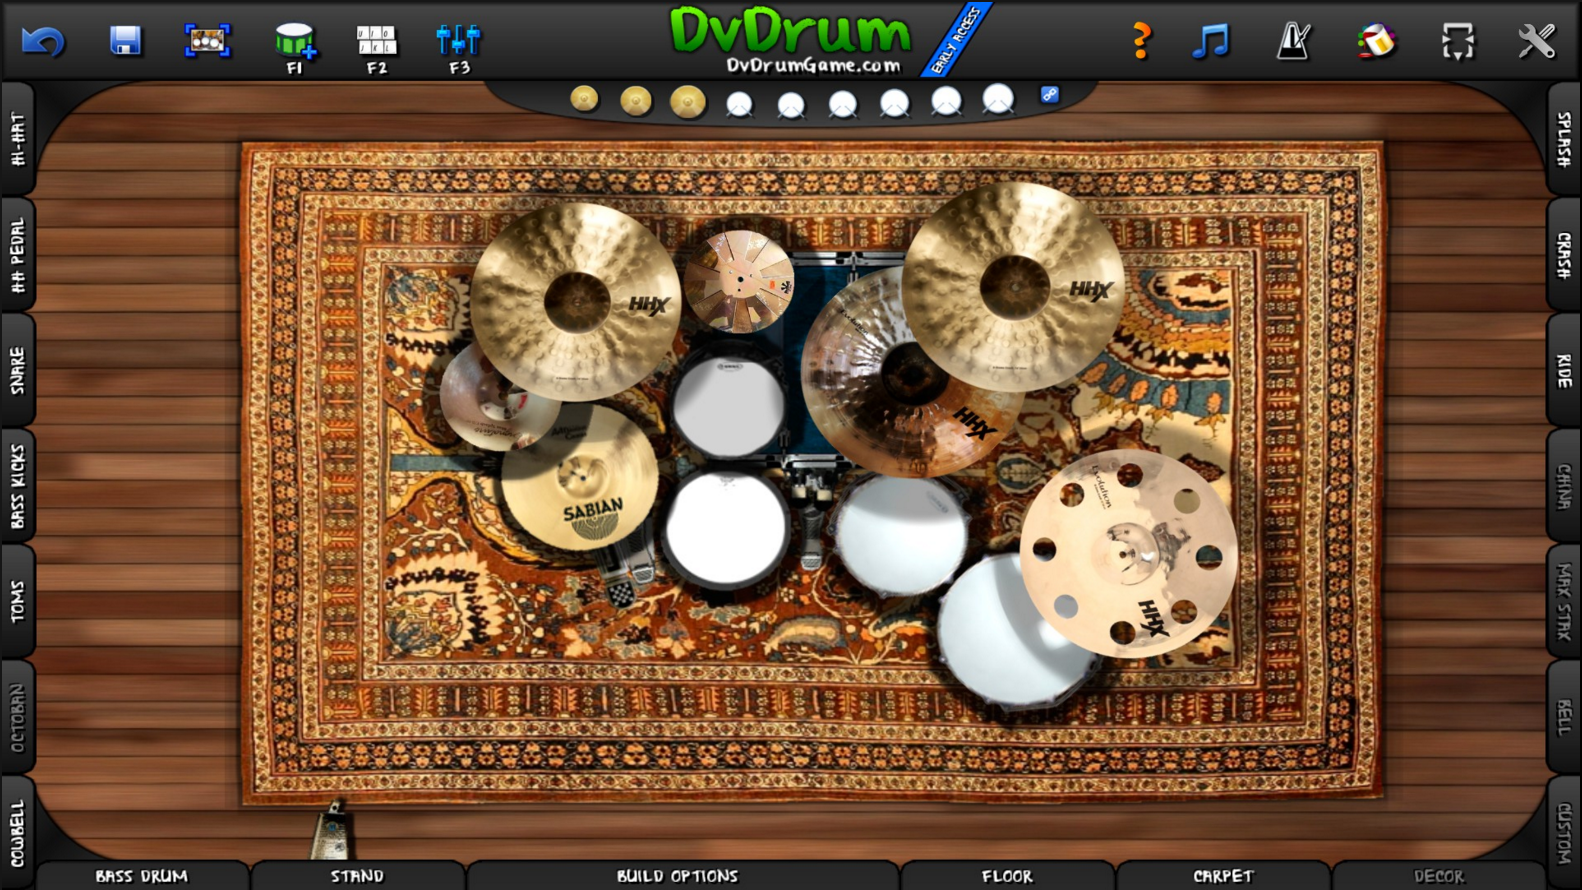 Another Drumkit